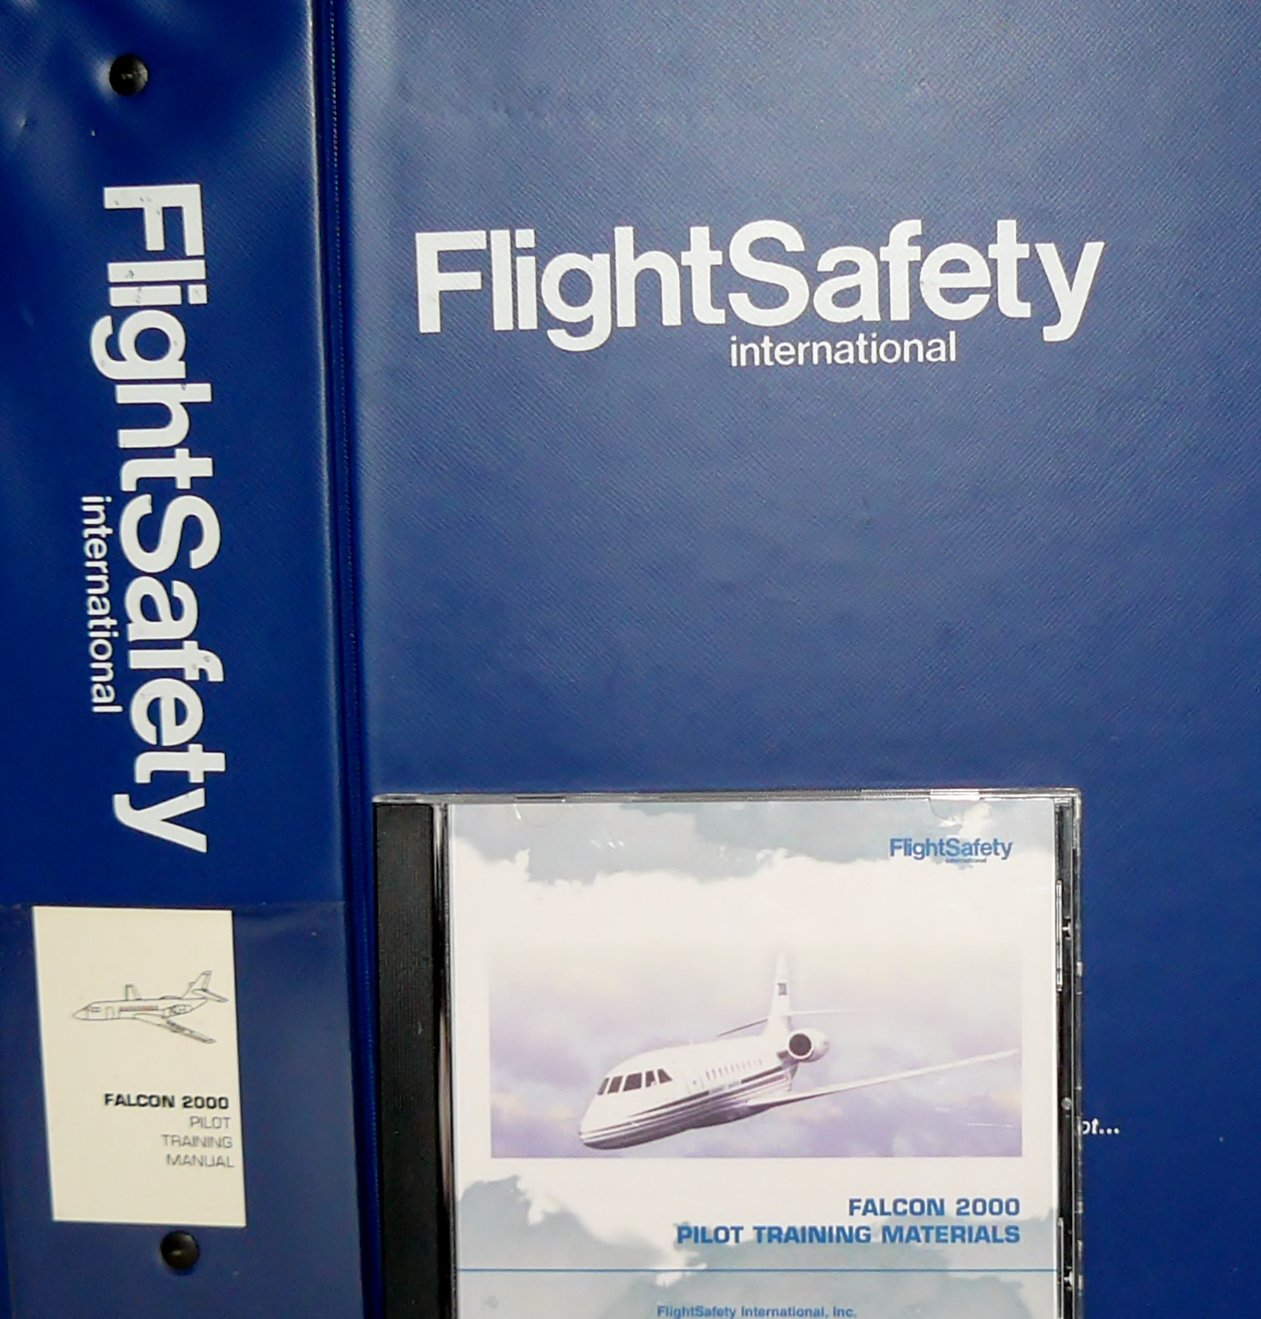 Dassault Falcon 2000 Complete Training Guide with 2 Training Manuals, 1  Pilot Emergency Checklist, 1 Pilot Normal Checklist, and 1 Falcon 2000 CD  Rom ...